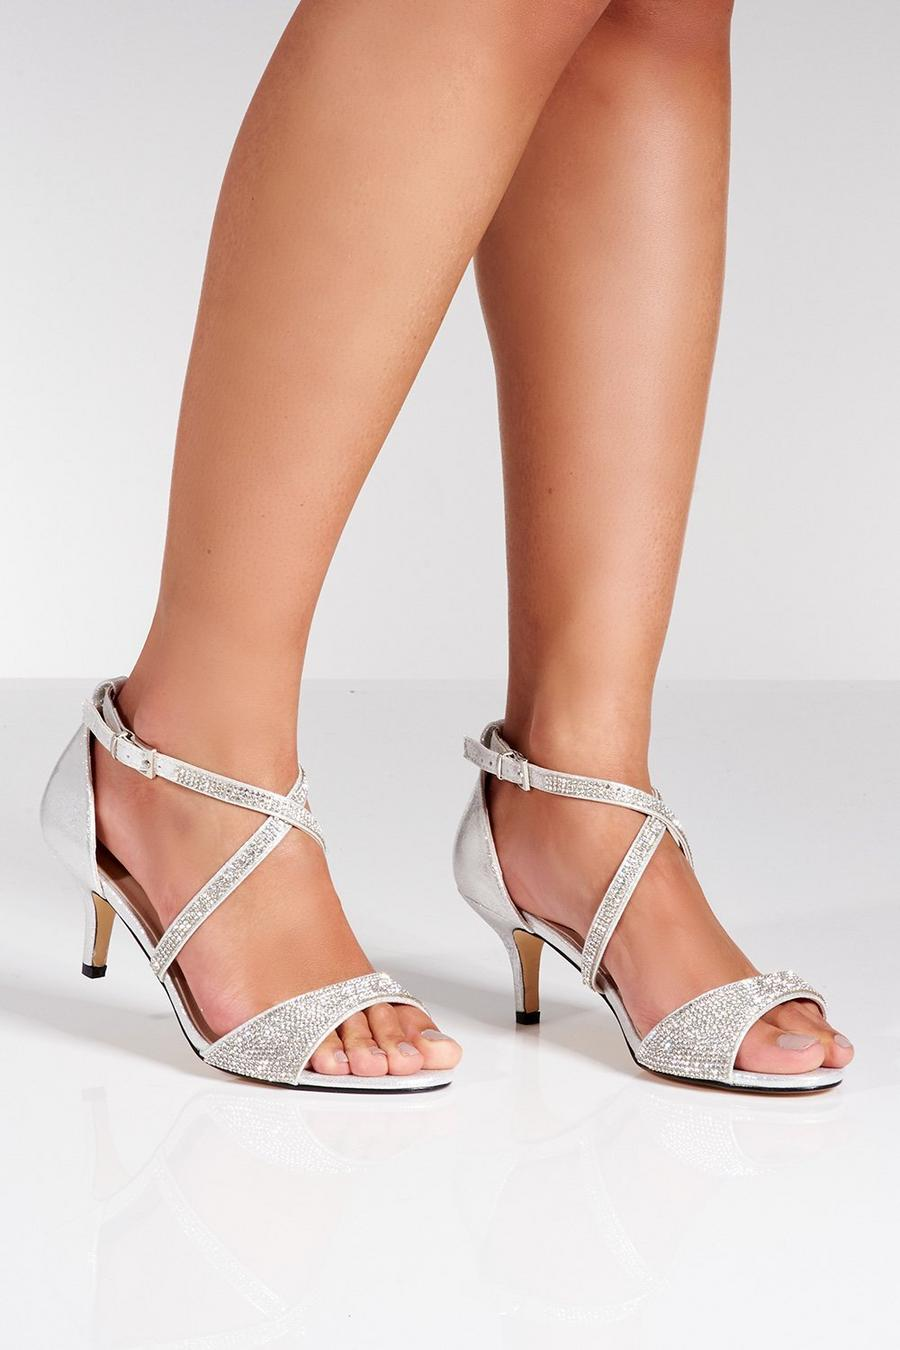 83420ab25a3 Silver Shimmer Diamante Low Heel Sandals